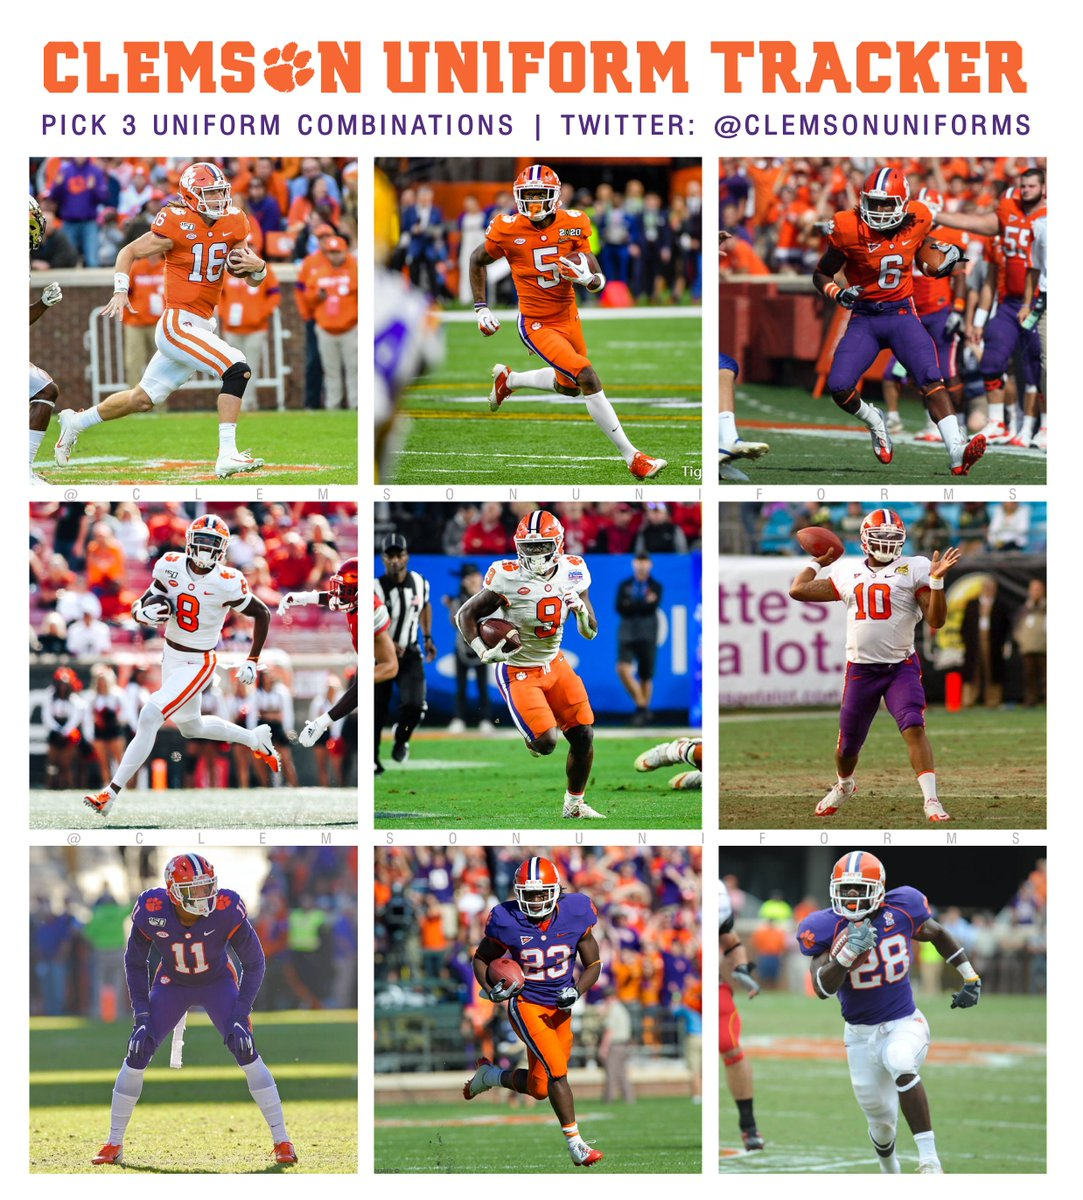 Clemson Uniform Tracker On Twitter For Those Wondering Each Picture Is From The Last Game Clemsonfb Played Wearing That Uni Combo The Other Five Sets Were Worn In 2019 White